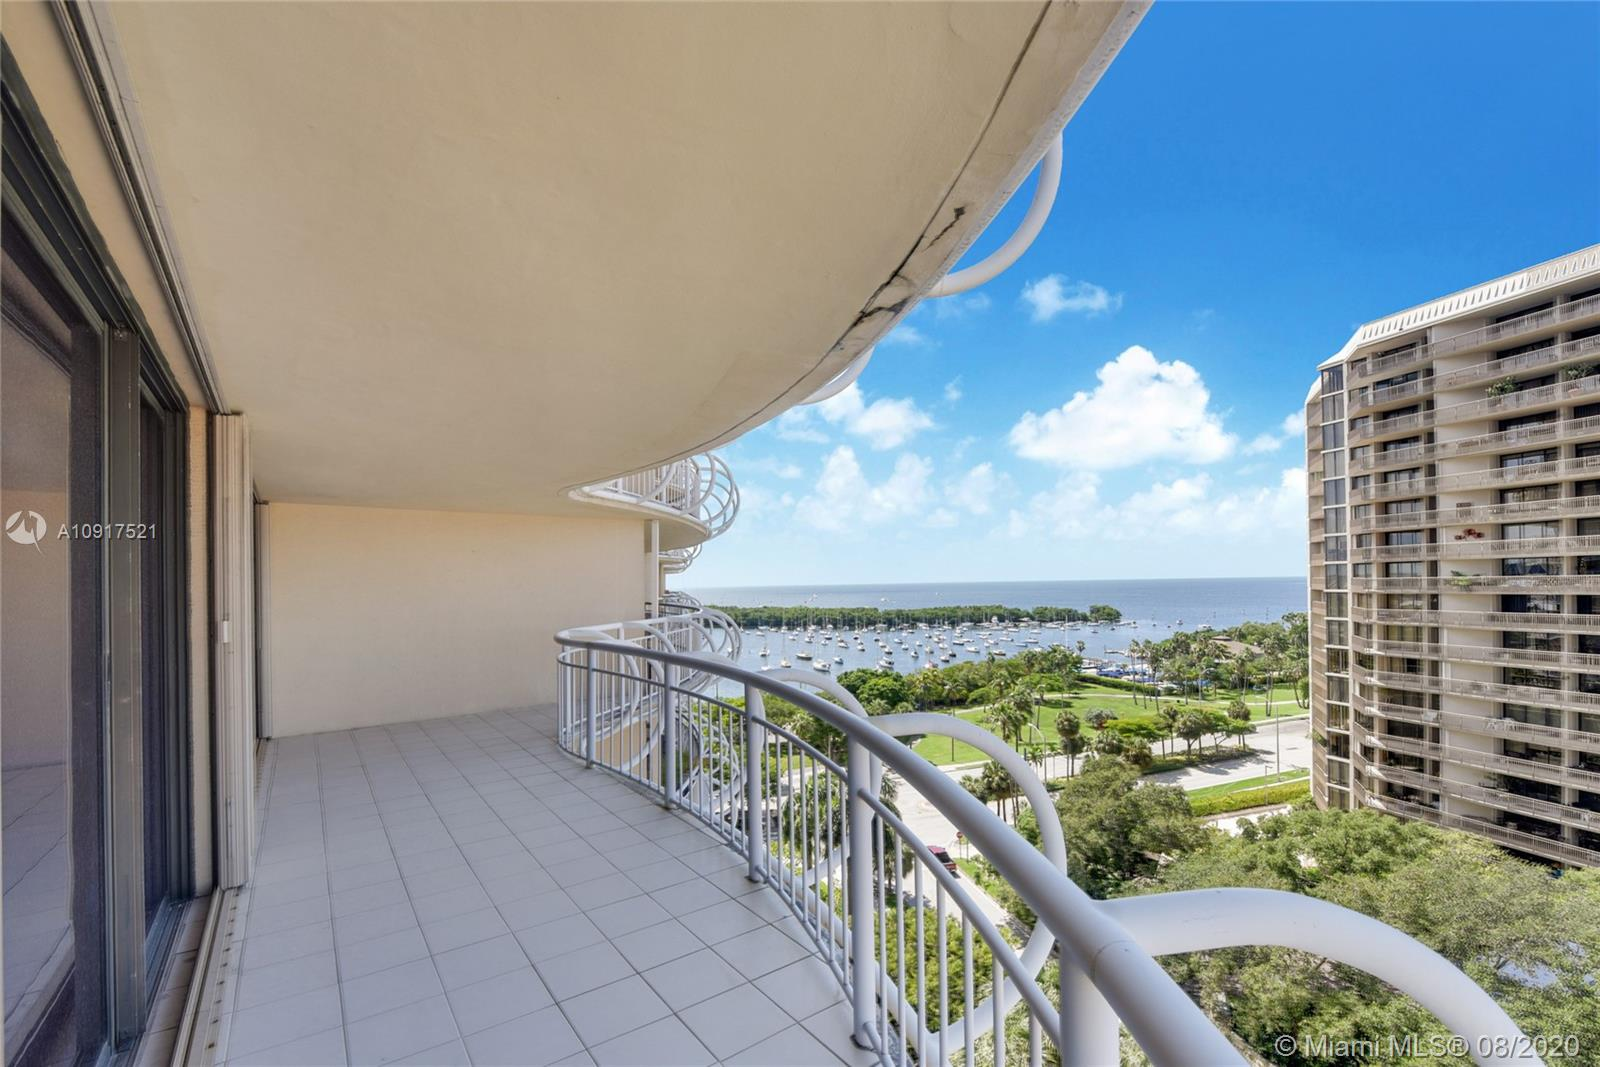 Live in the heart of the Grove village overlooking Sailboat Bay, in these charming 2 bedrooms, 2 bathrooms with 800 square feet of wraparound balconies to entertain or just relax!!! Walking distance to marinas, restaurants, shopping, Fresh Market, movie theater, and more. Grove Towers is a prestigious, full-service condo bldg. with a spectacular swimming pool, 02 tennis courts, spa, updated gym with all new equipment, valet parking & 24h concierge. Grove Towers is truly a prestigious, full-service condo bldg. This is the BEST PRICED UNIT IN THE BUILDING!!!